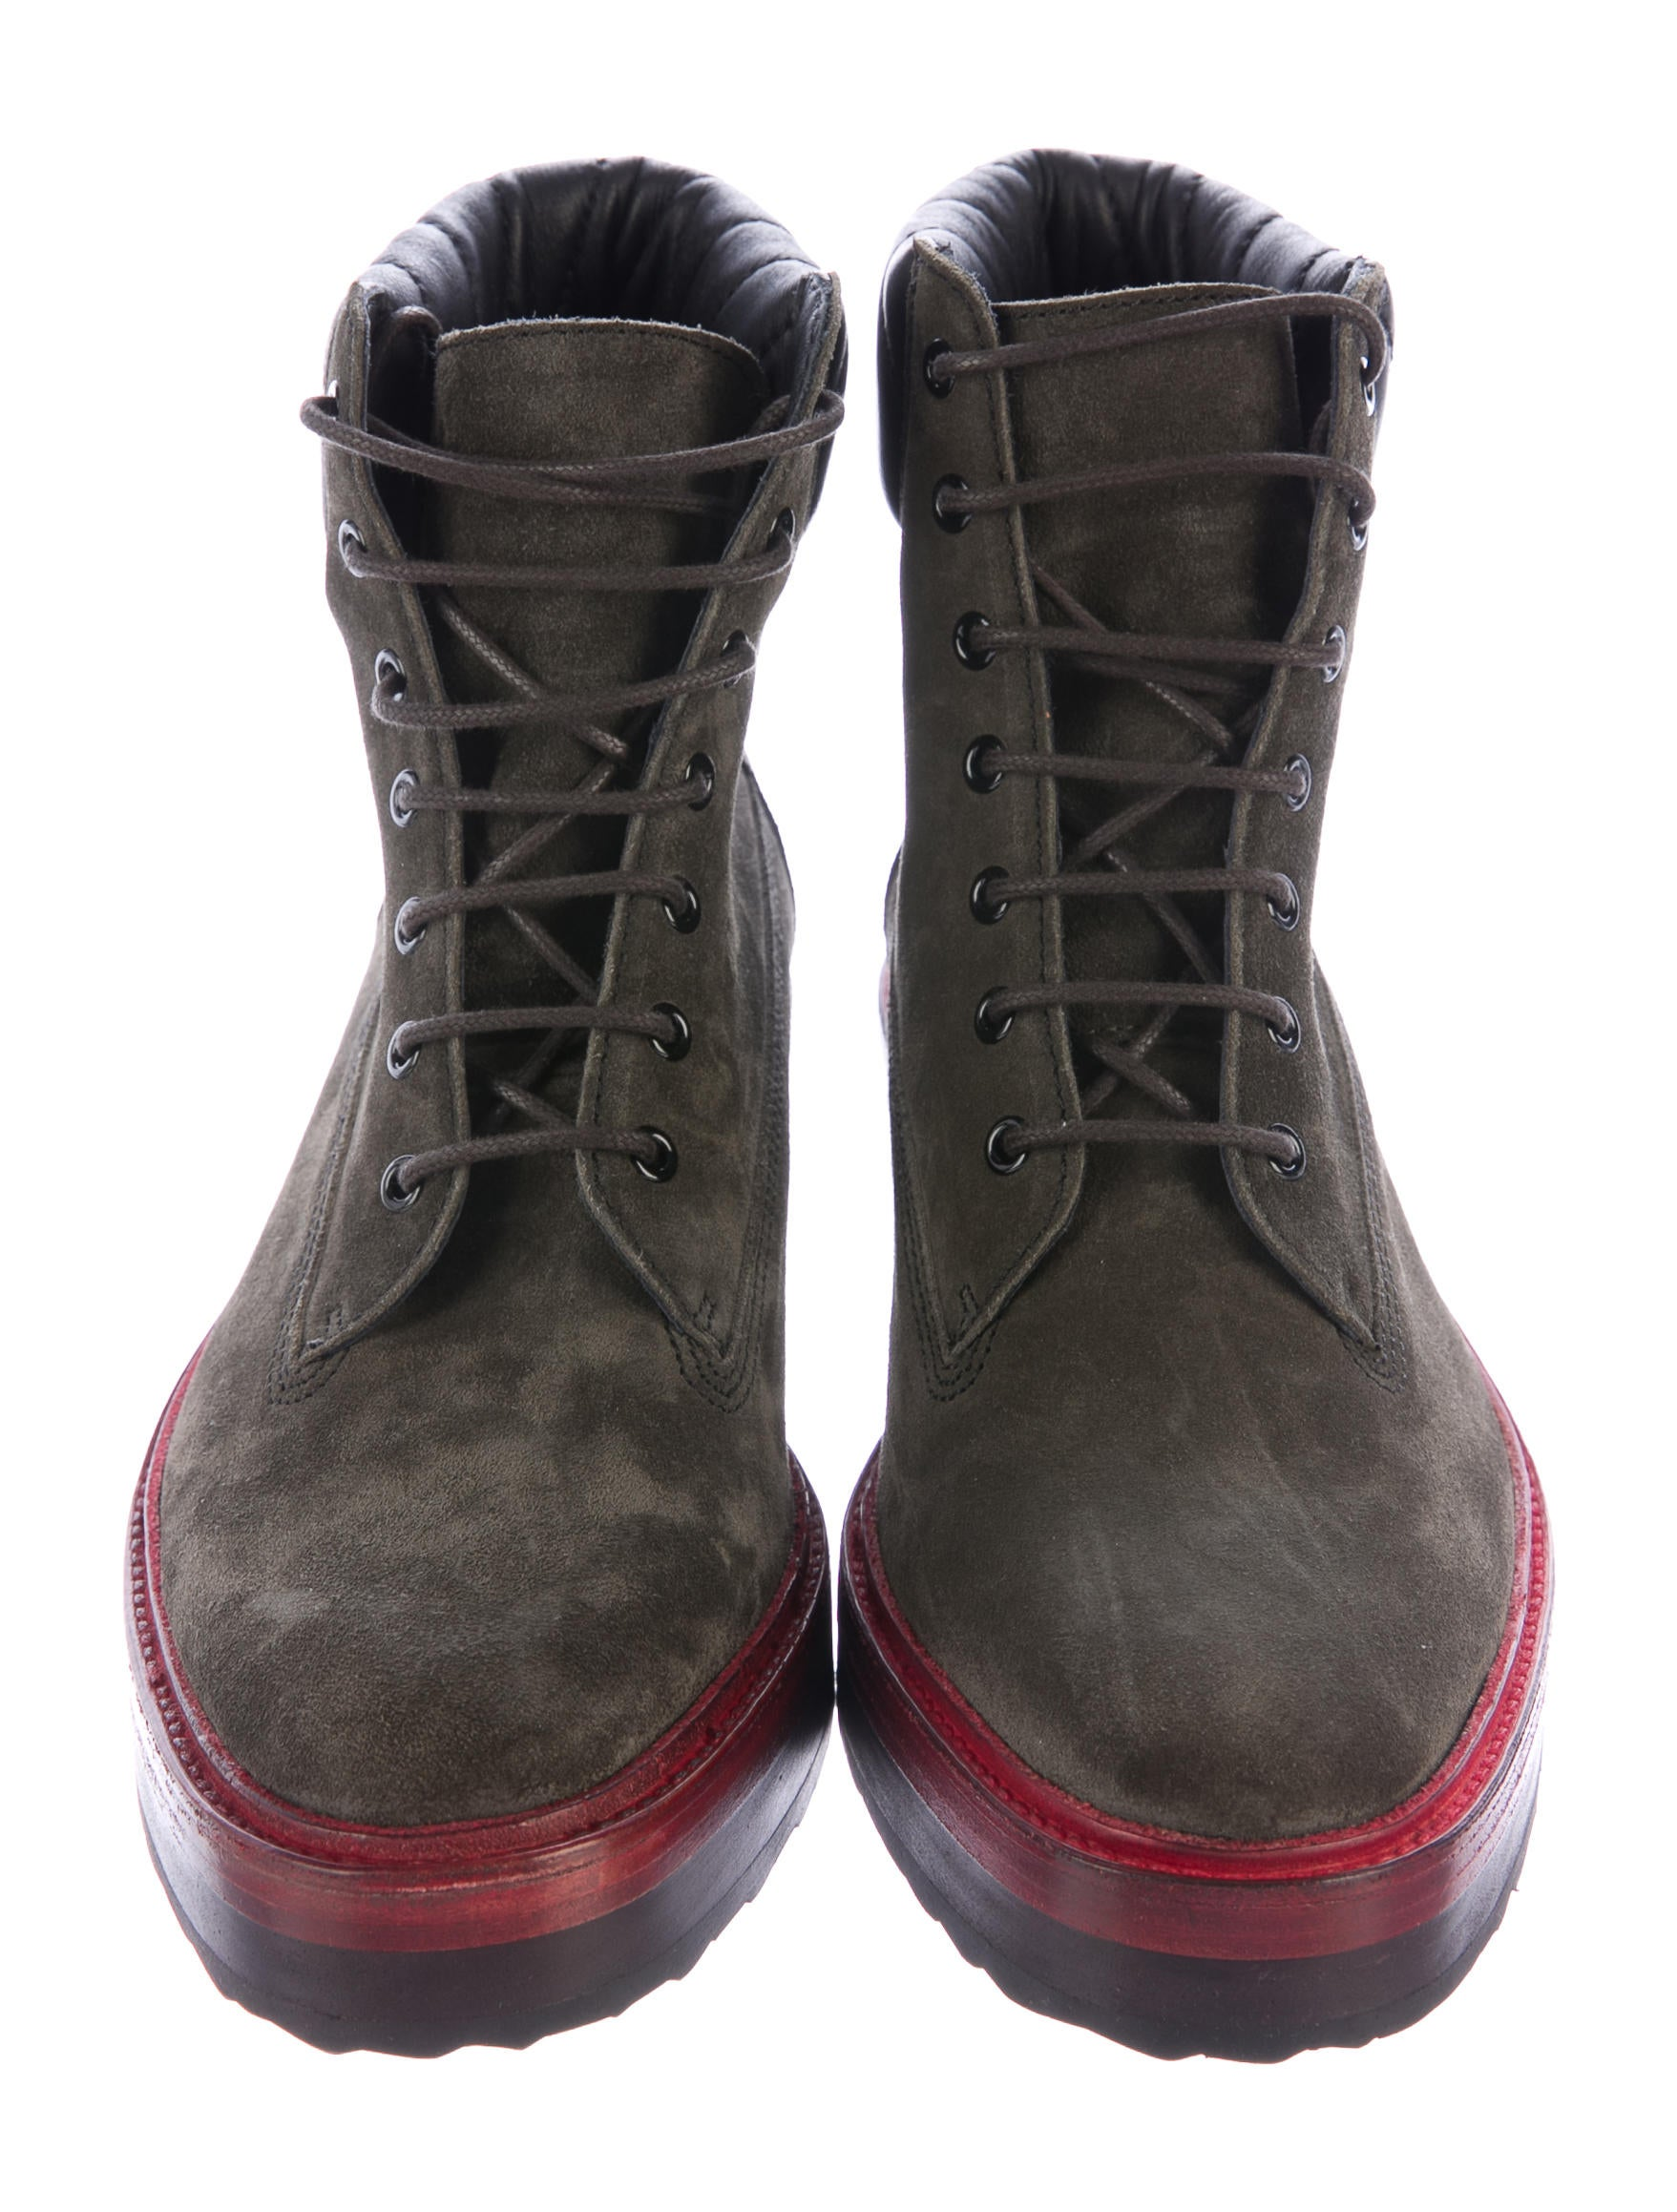 pierre hardy suede lace up boots w tags shoes pie24277 the realreal. Black Bedroom Furniture Sets. Home Design Ideas